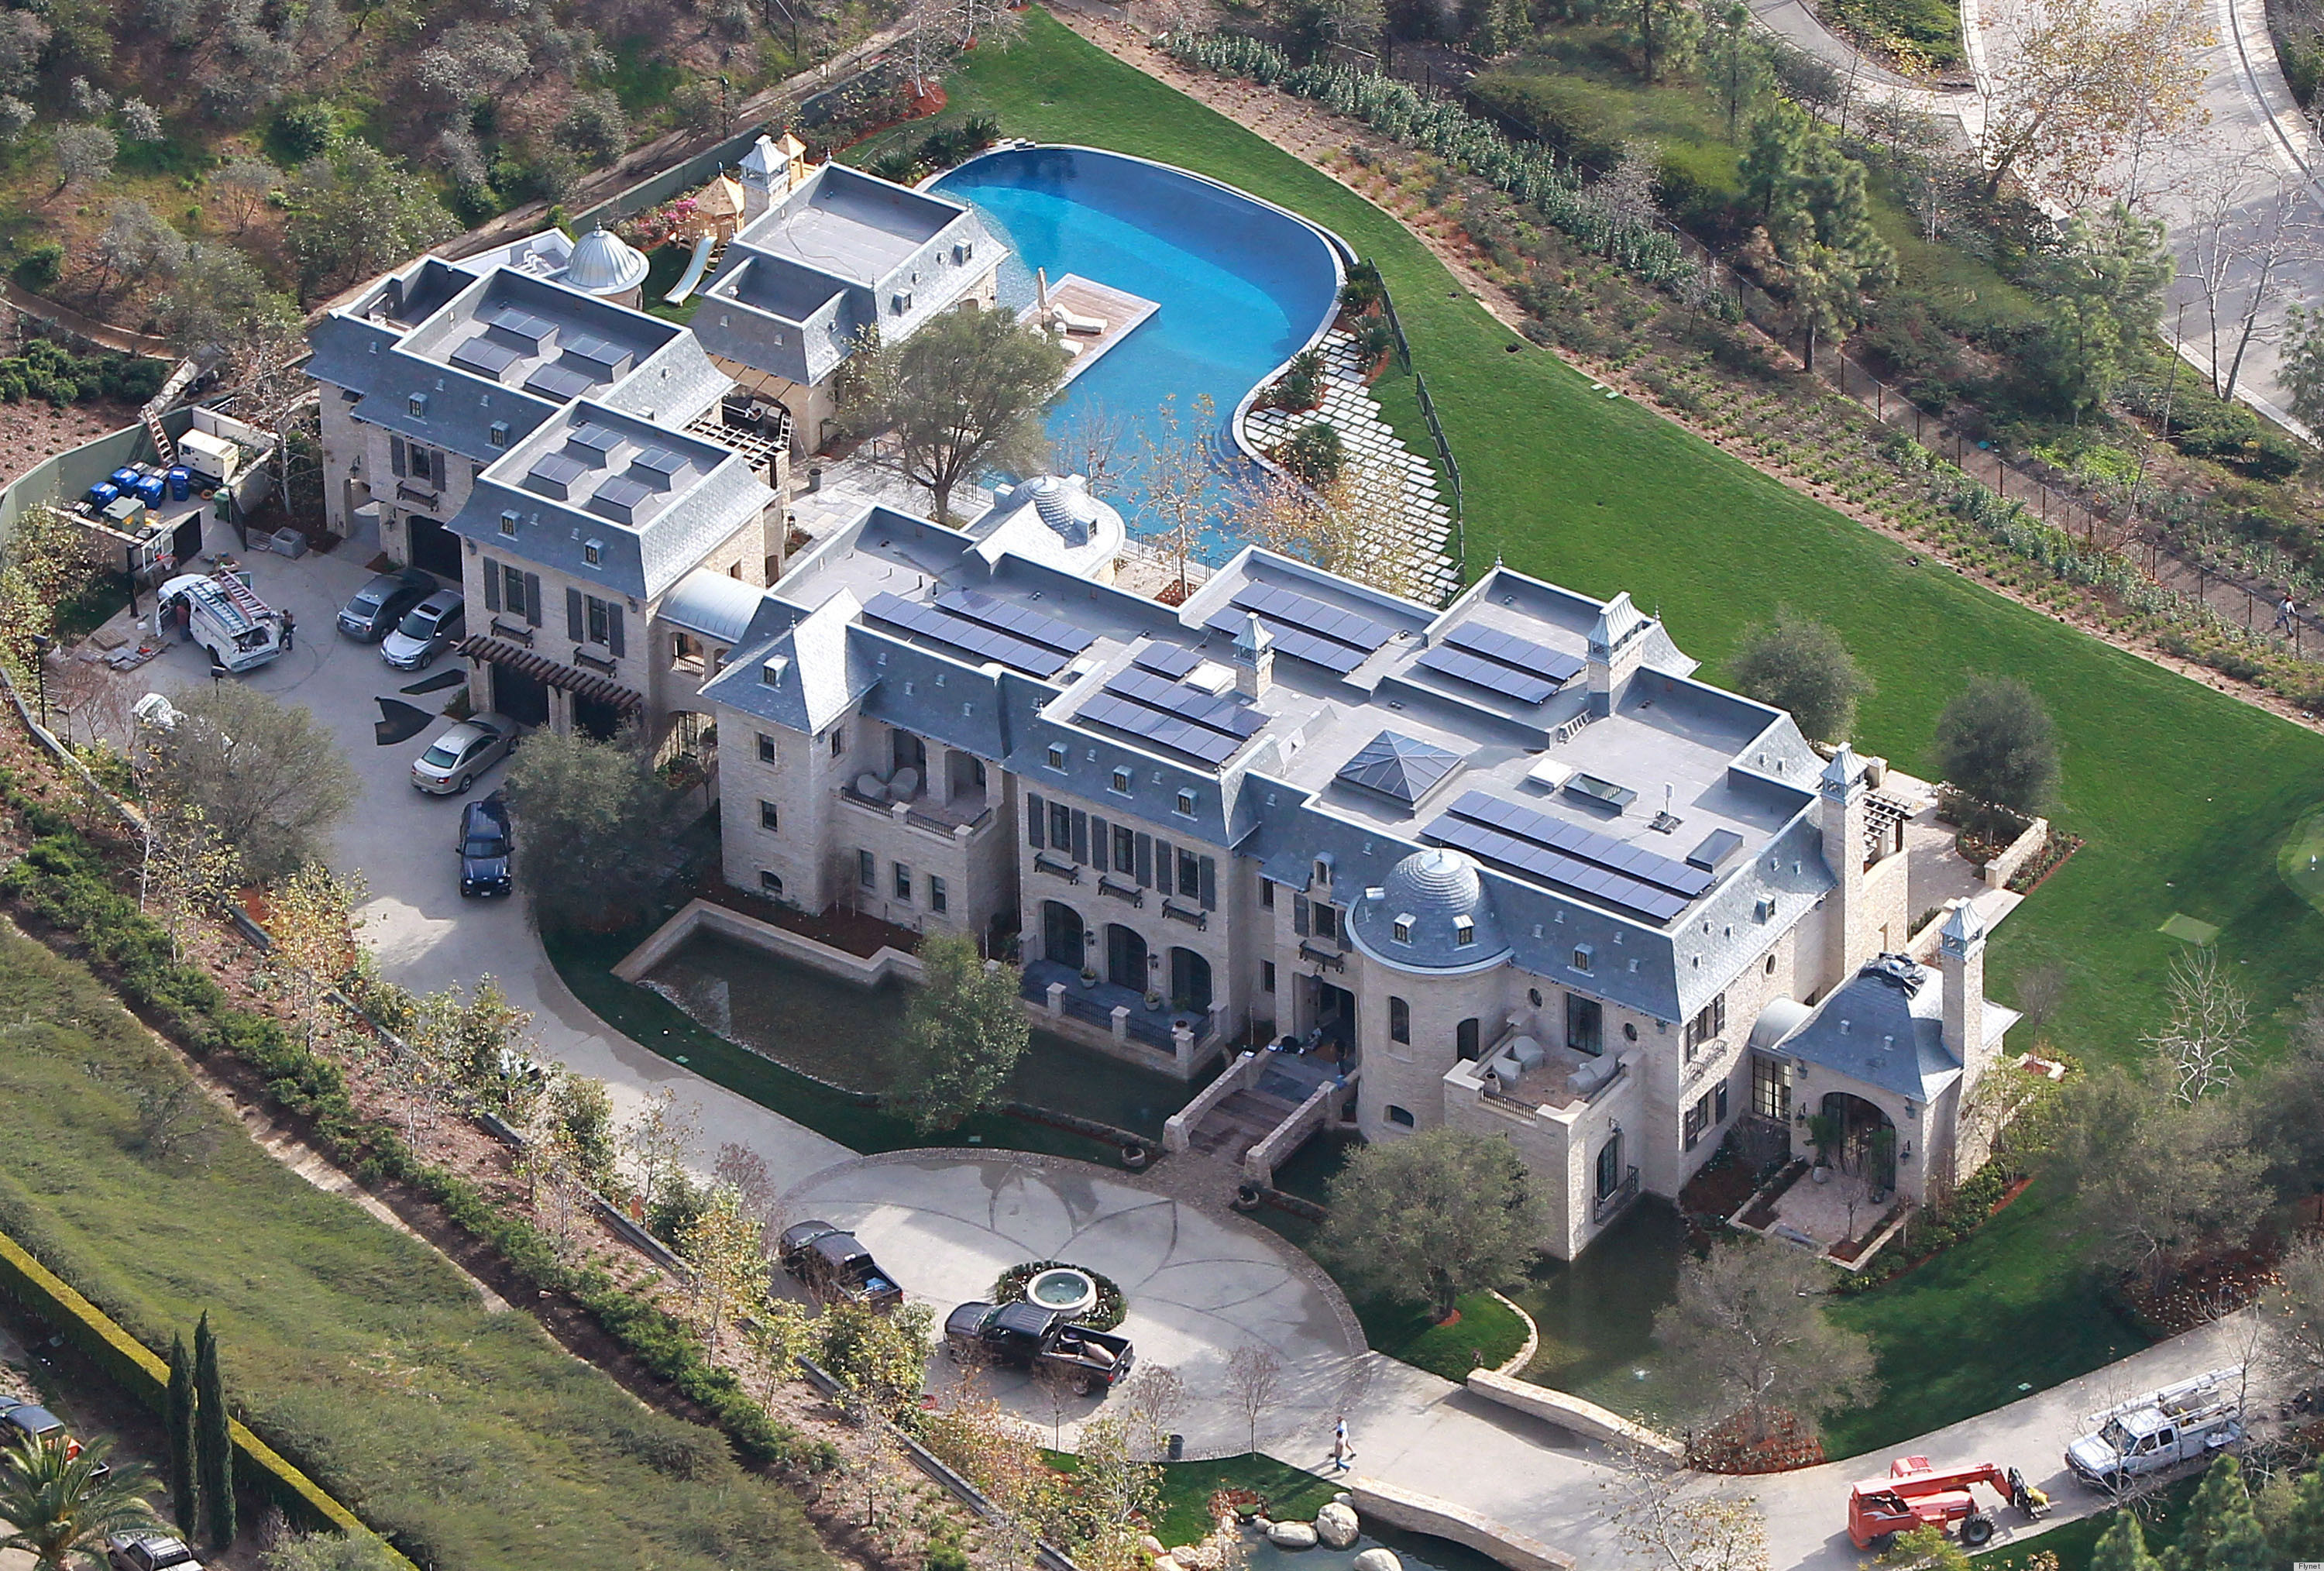 gisele   tom brady s new house in california is bigger